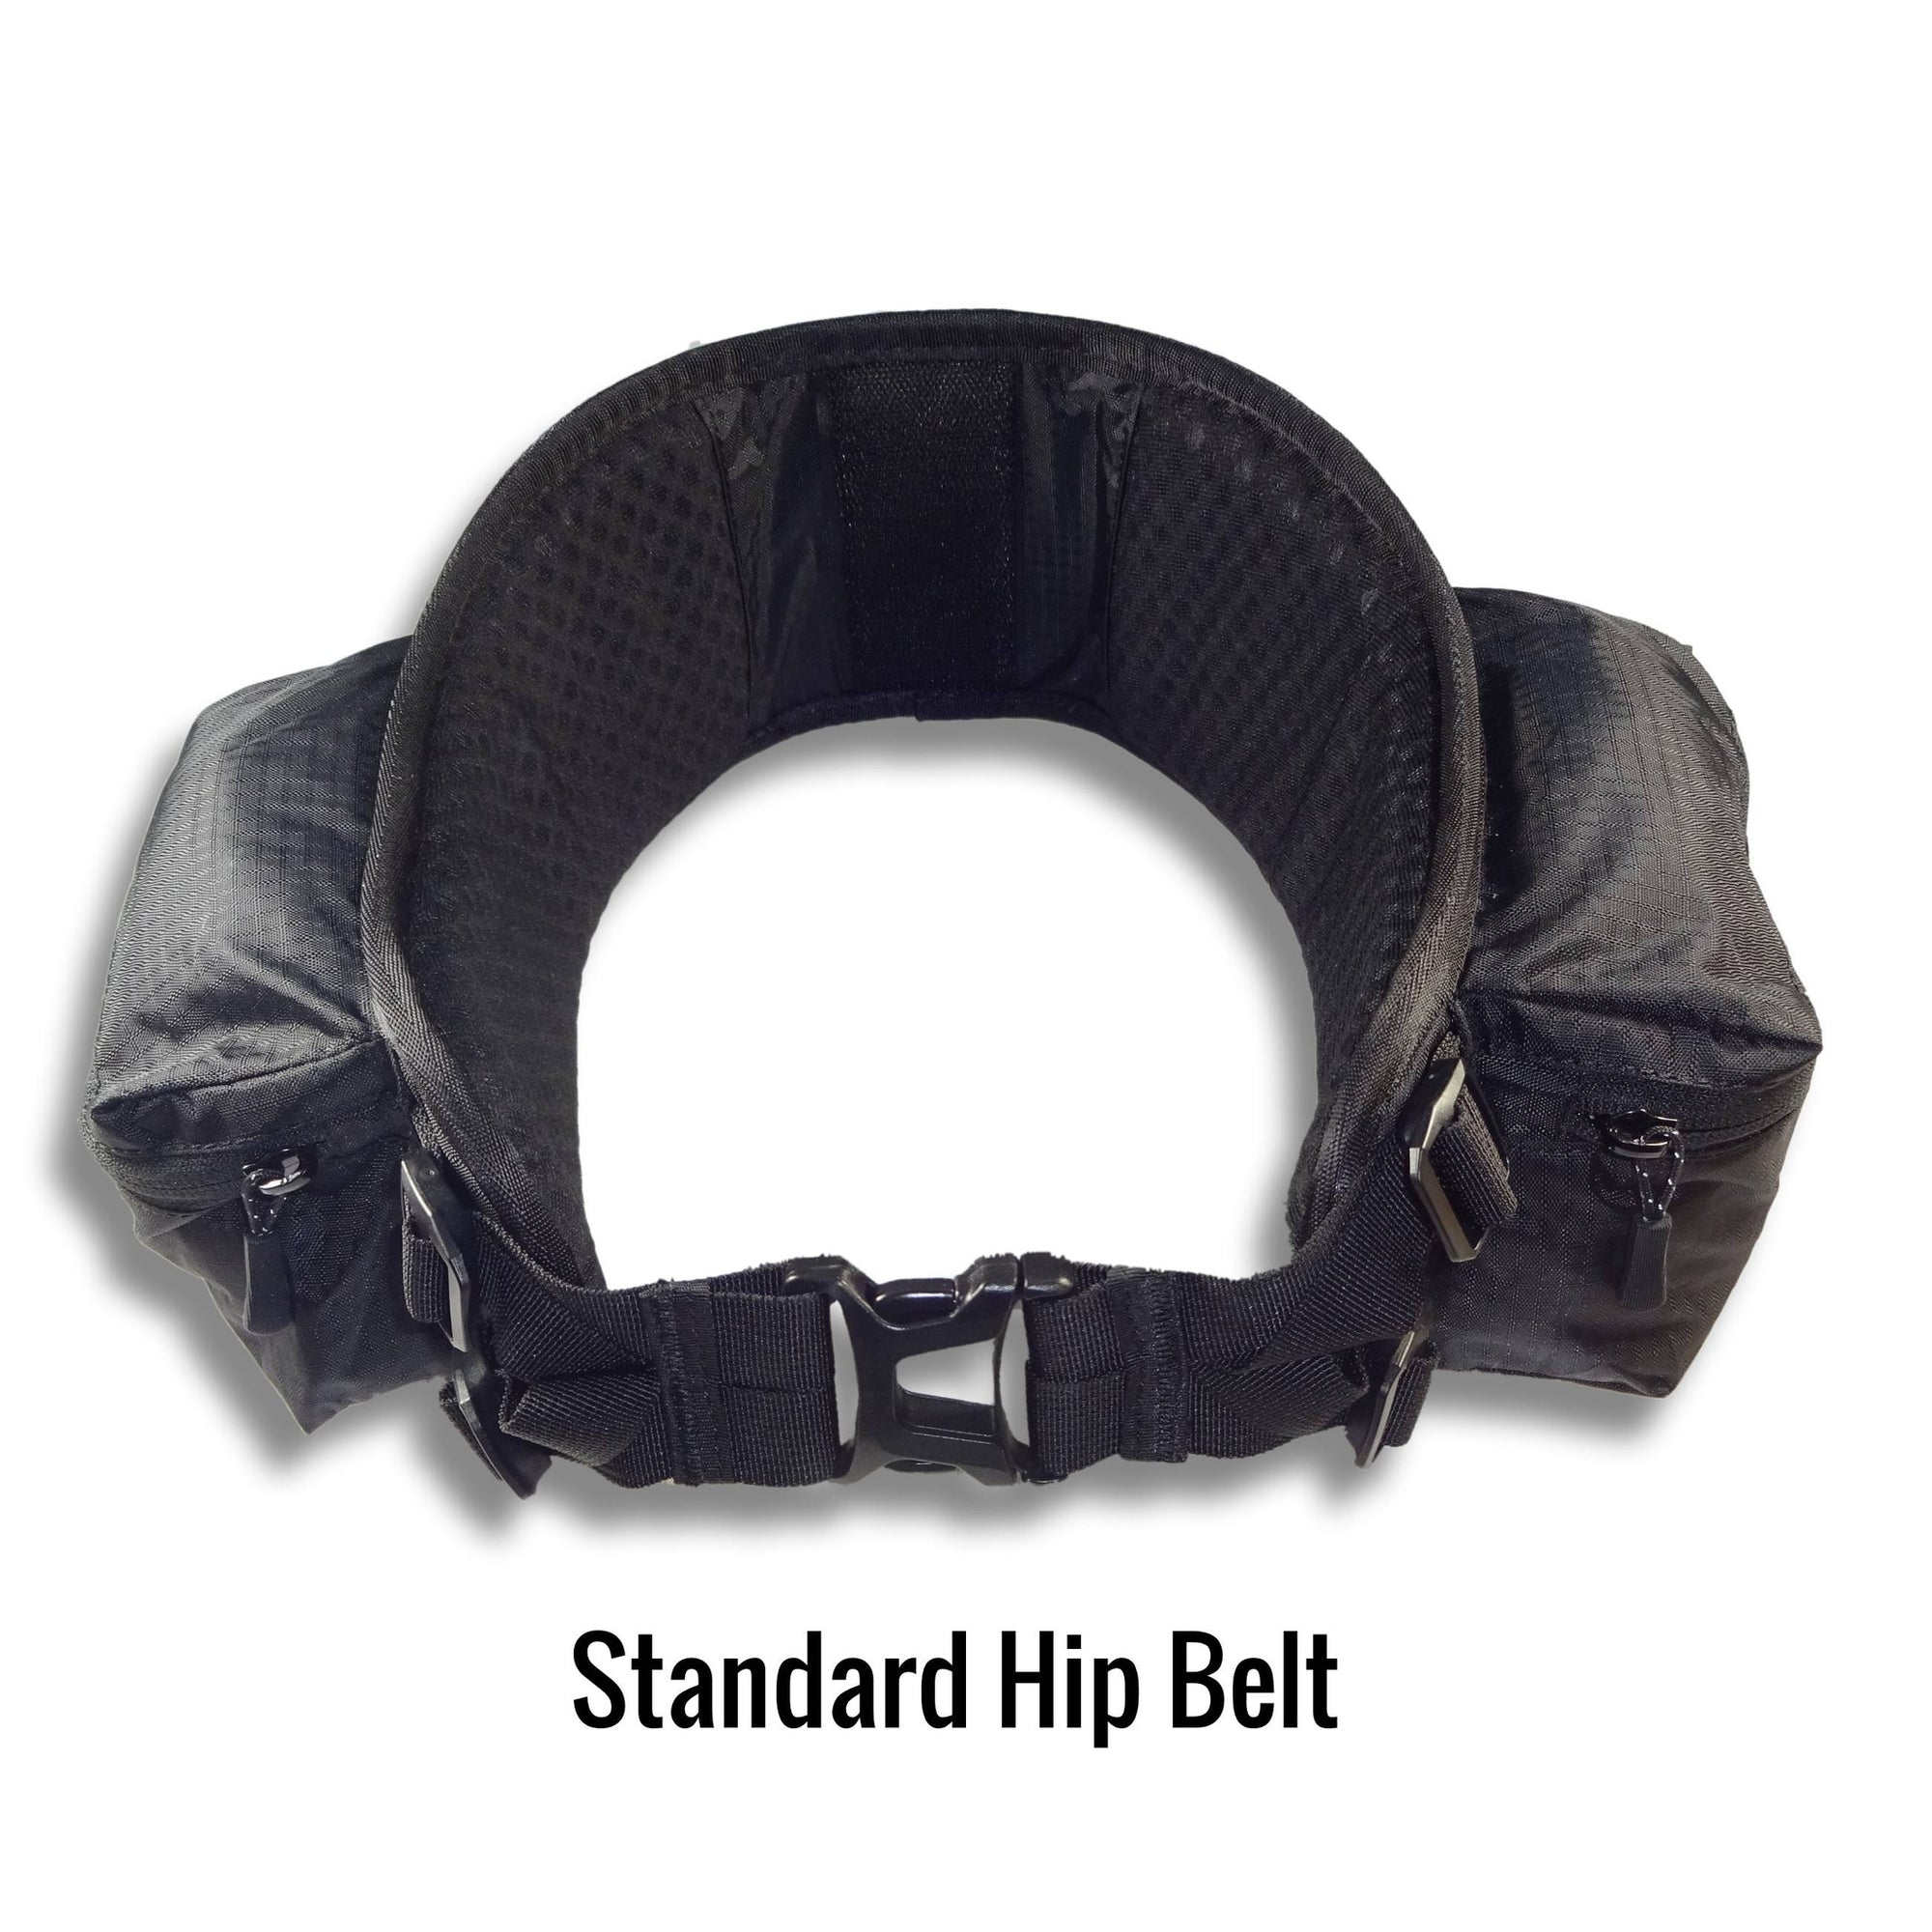 Standard Hip Belt with large pockets